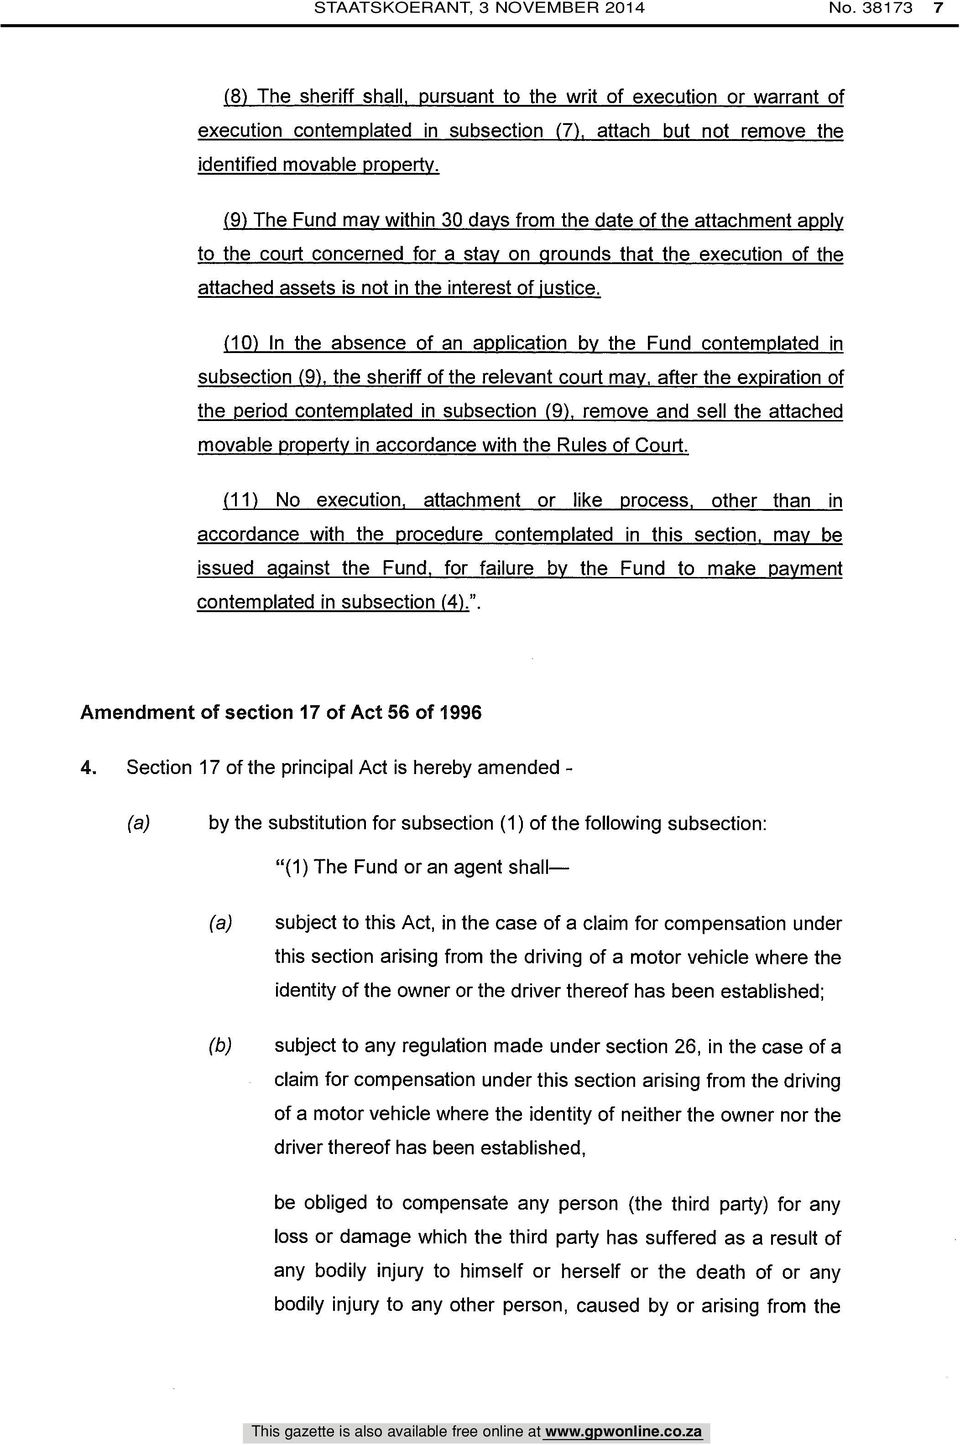 (9) The Fund may within 30 days from the date of the attachment apply to the court concerned for a stay on grounds that the execution of the attached assets is not in the interest of justice.